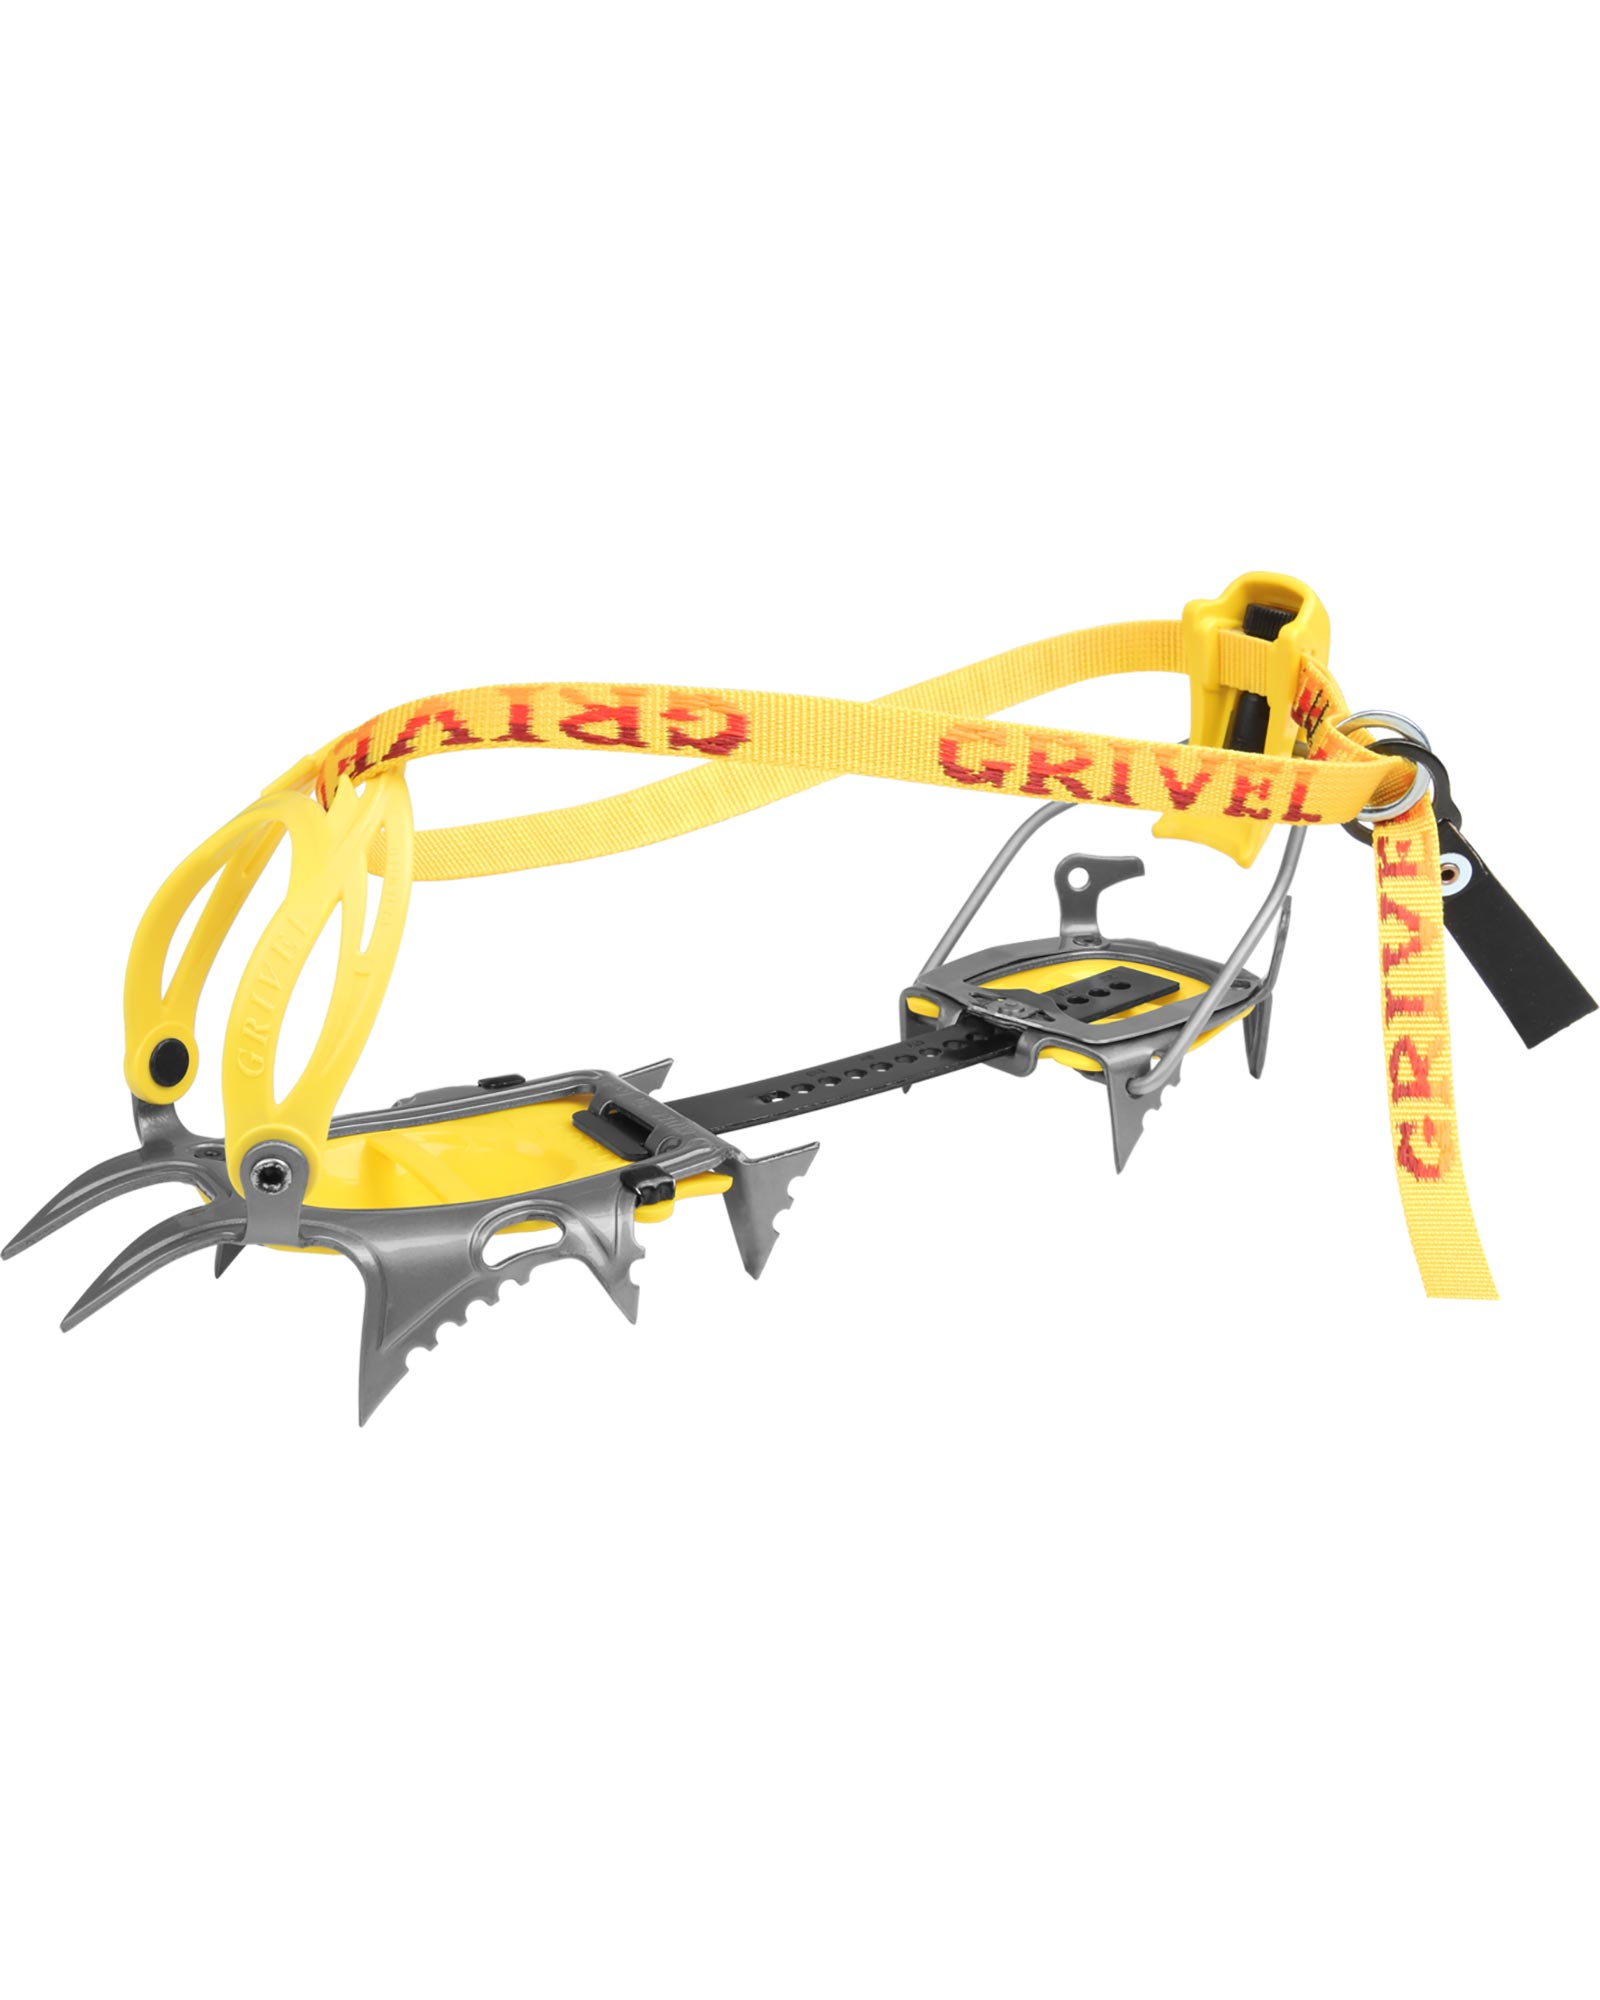 Grivel Air Tech New Matic Crampon 0